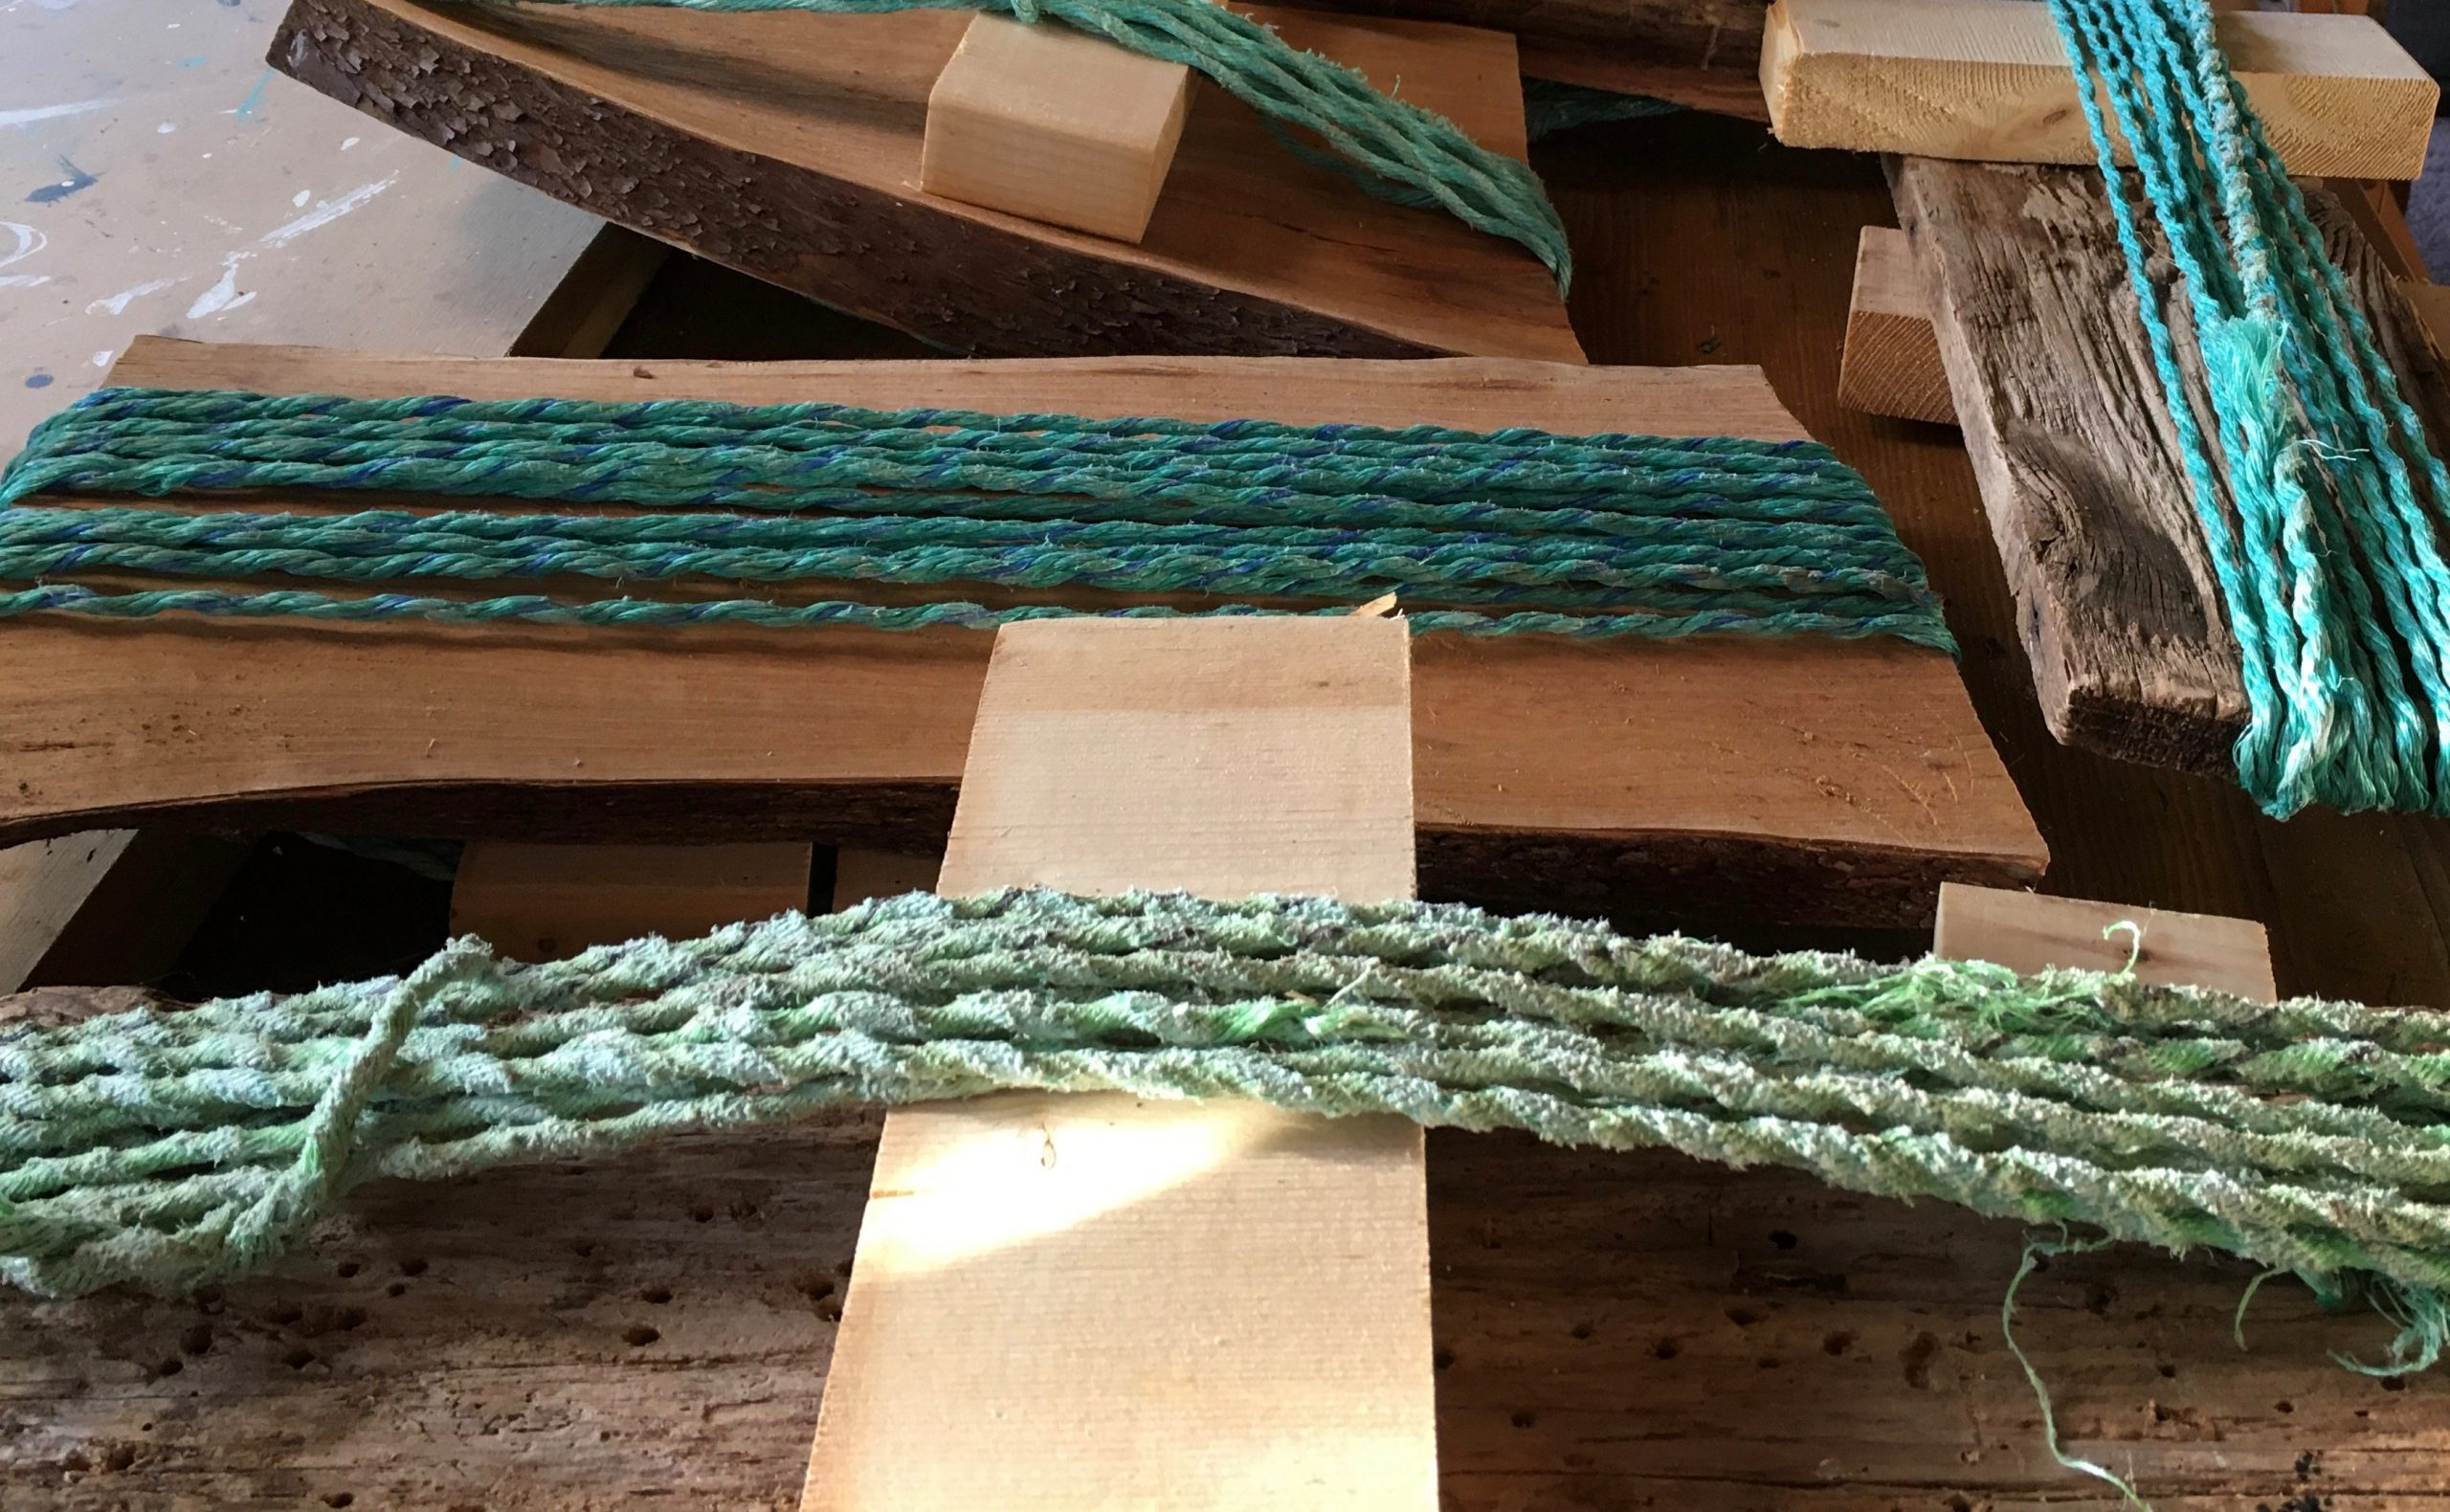 Stretching the washed rope